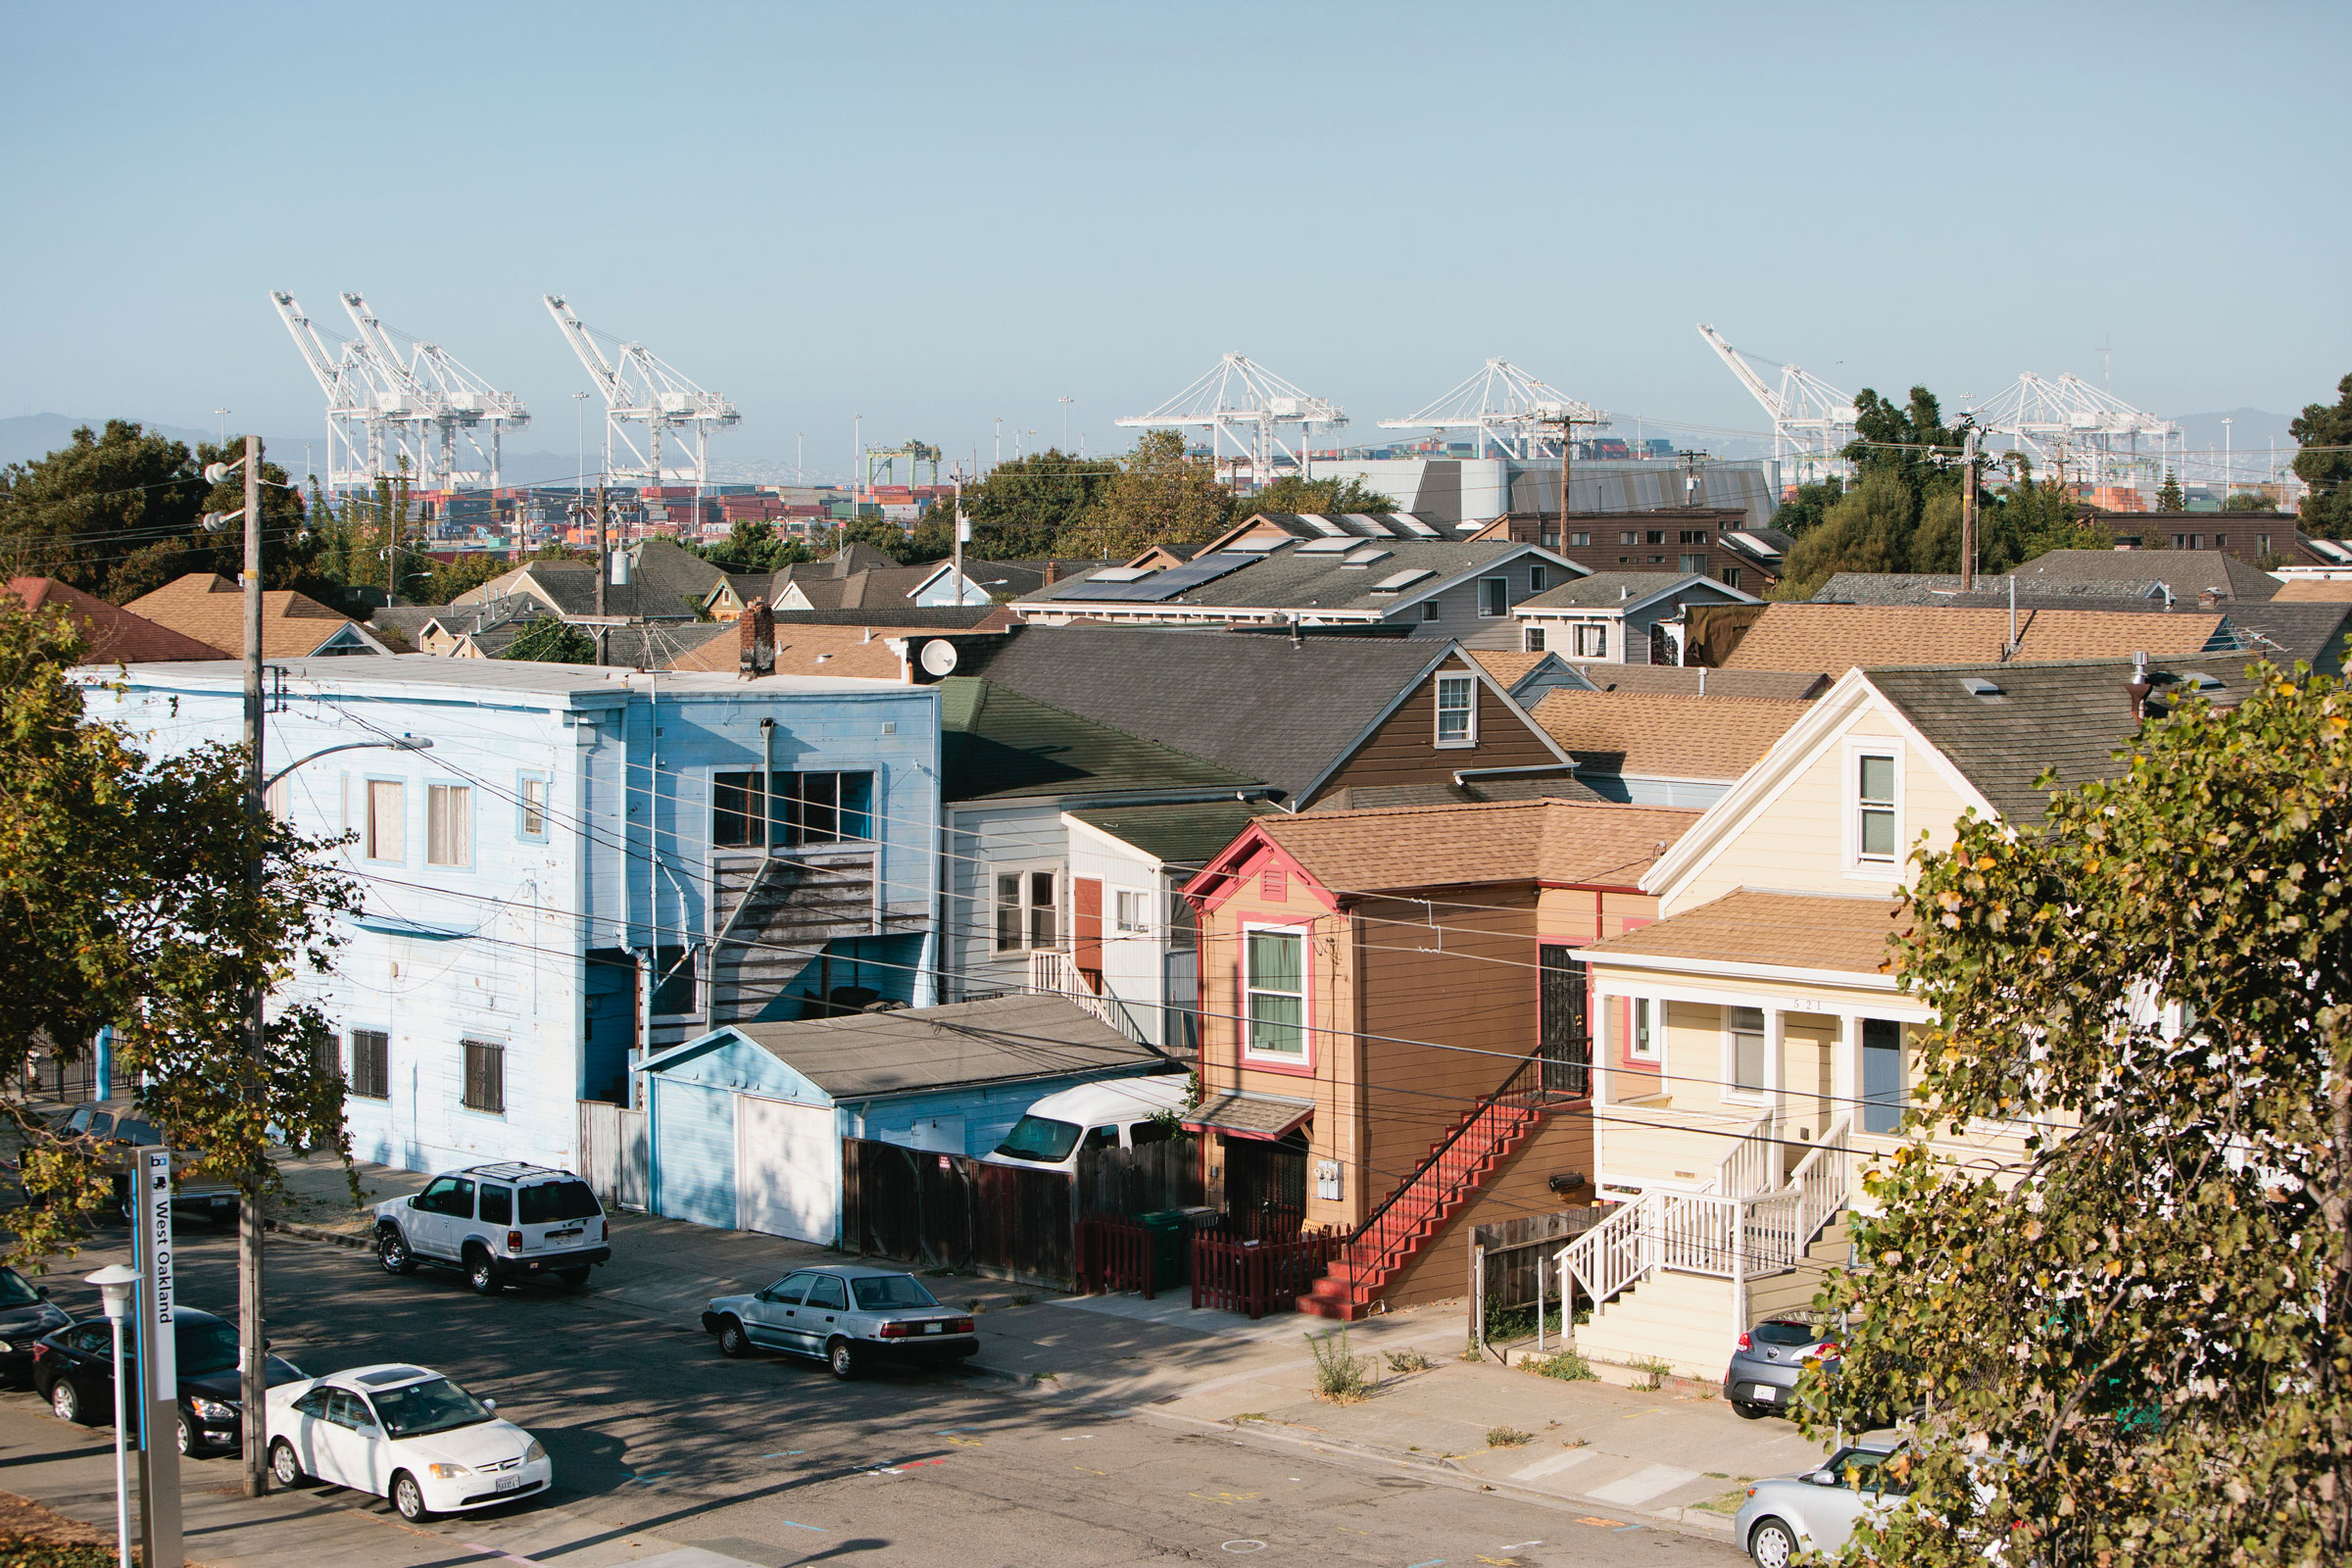 In West Oakland, black soot rims residents' windowsills and lodges in their lungs, causing asthma and other respiratory diseases. Alison Yin